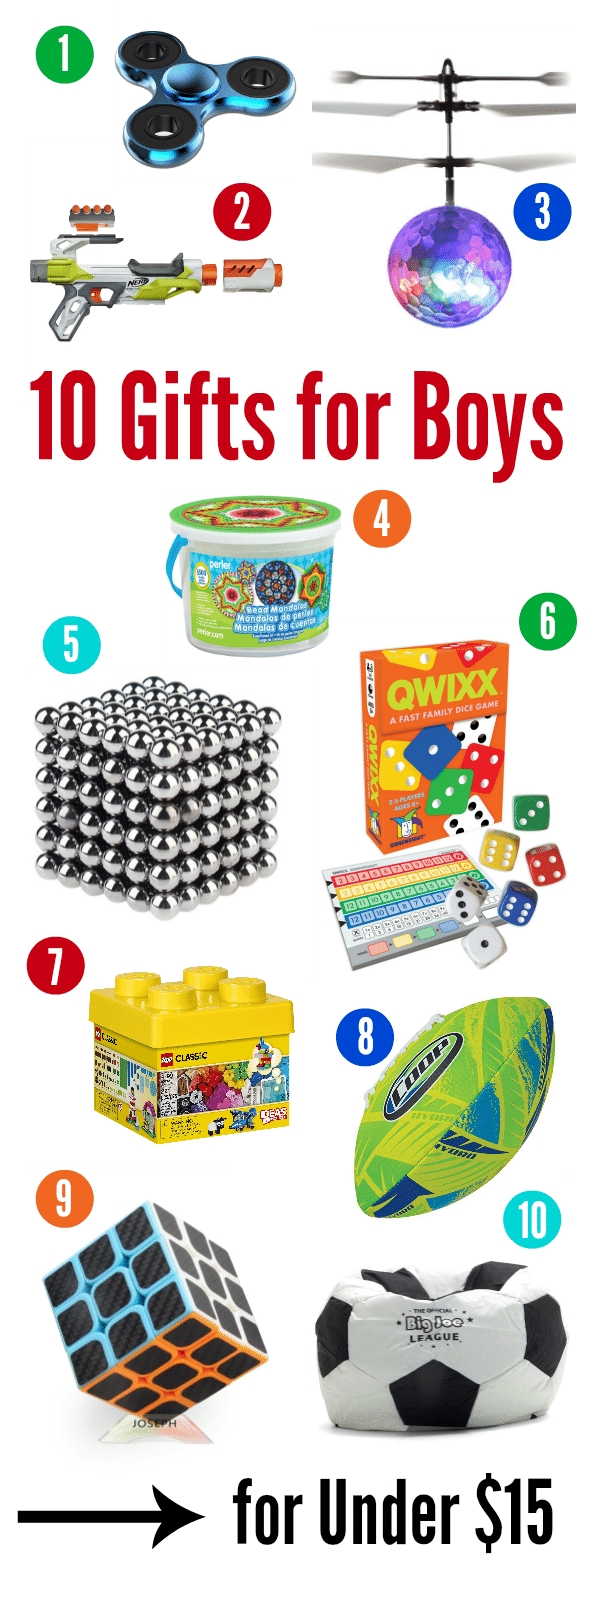 10 Pretty Gift Ideas For 10 Year Olds 10 best gifts for a 10 year old boy for under 15 fun squared 8 2021